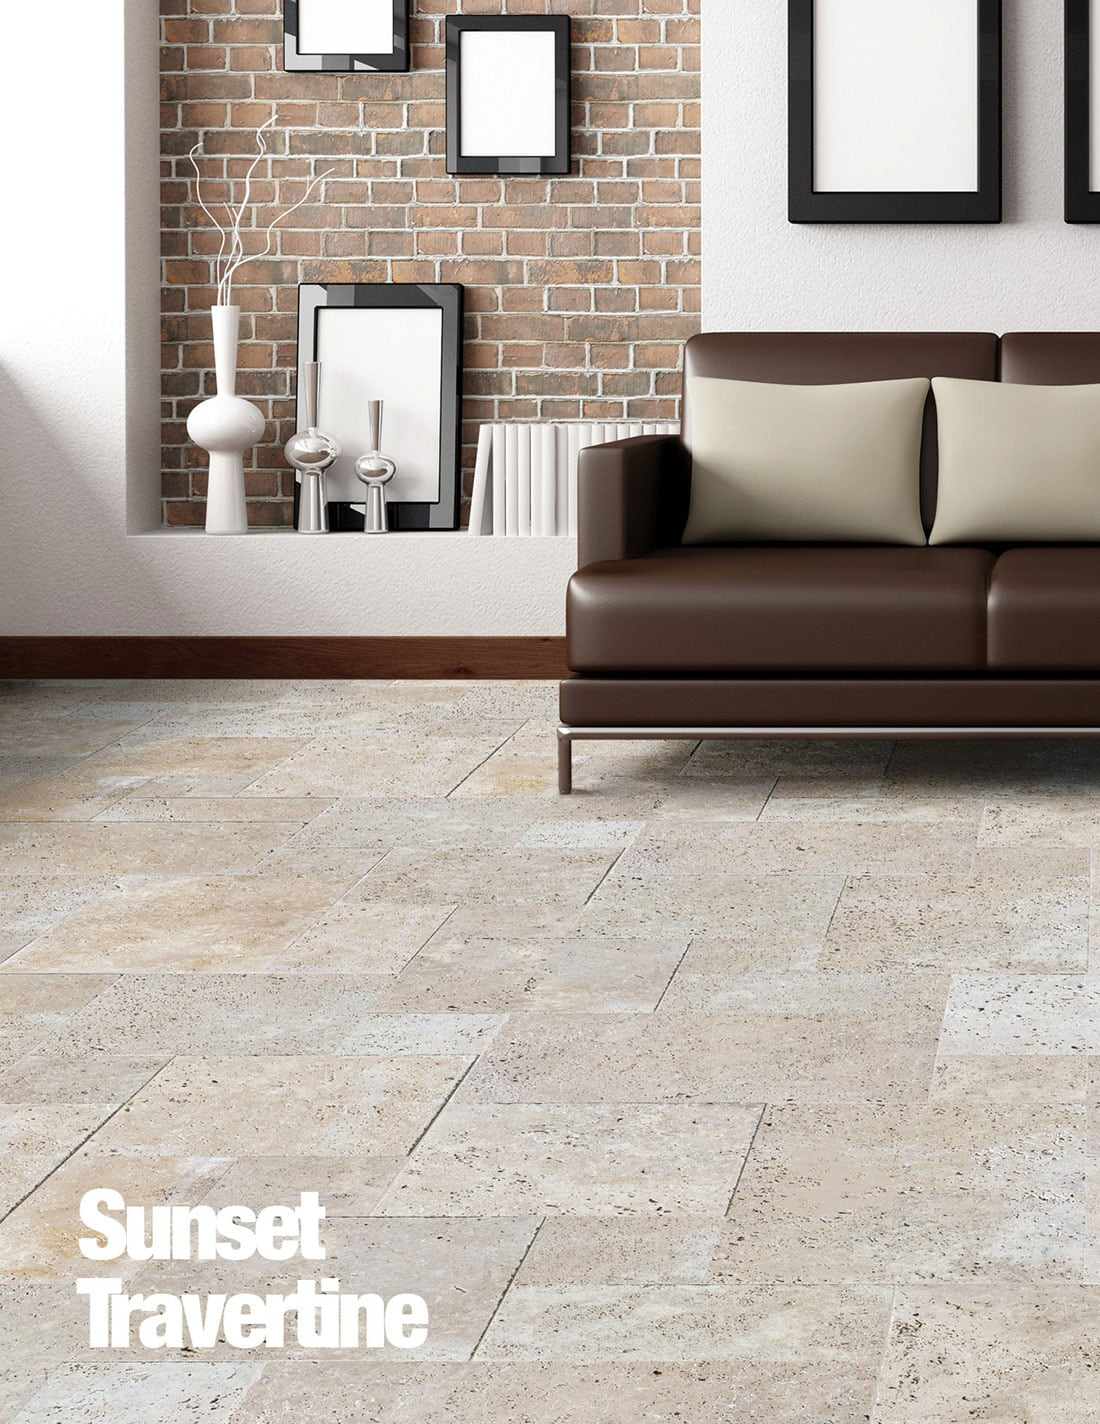 Sunset travertine